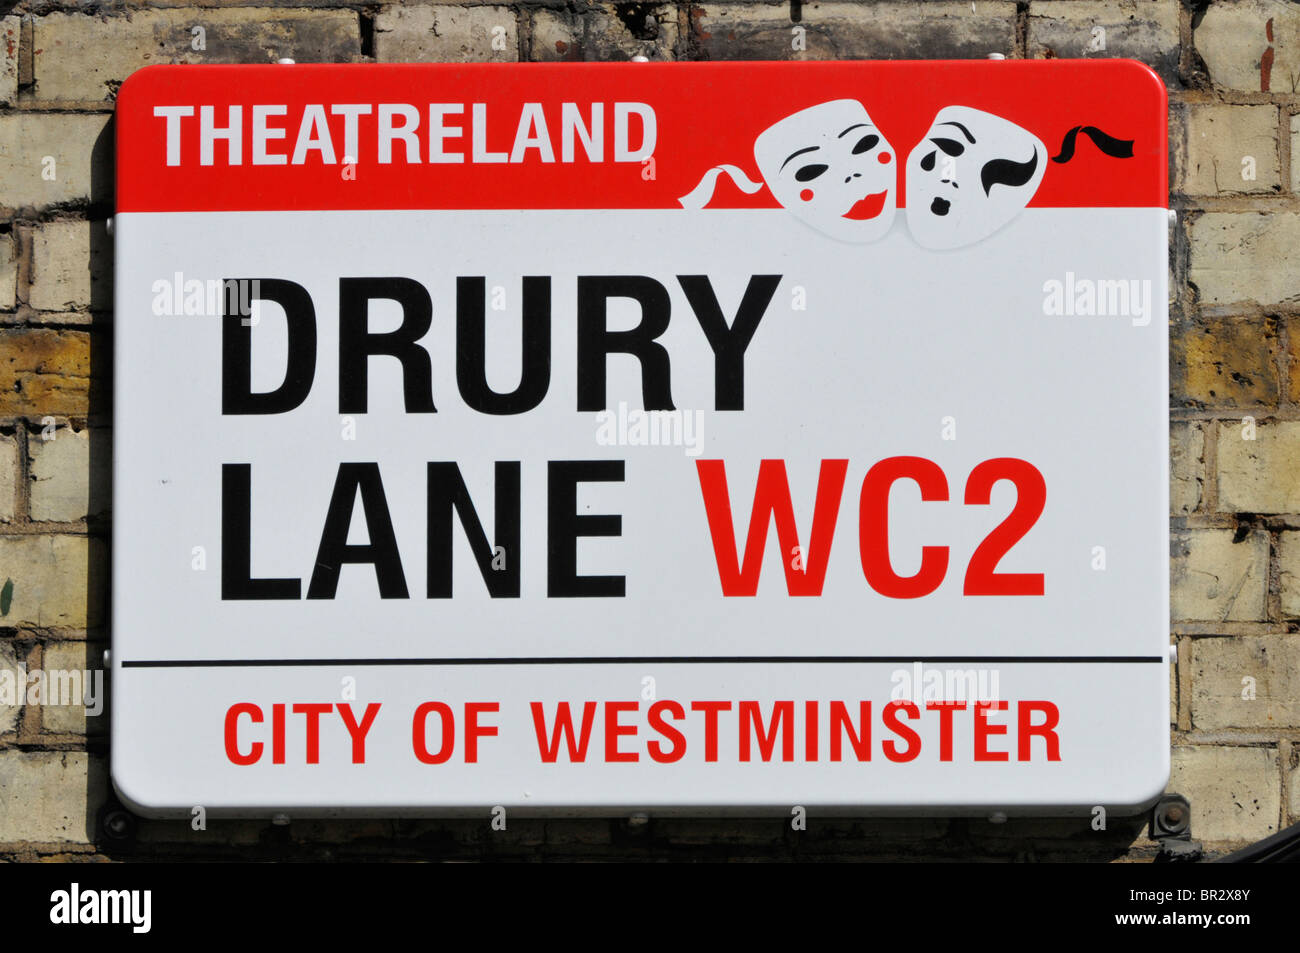 Drury Lane and theatreland street sign - Stock Image